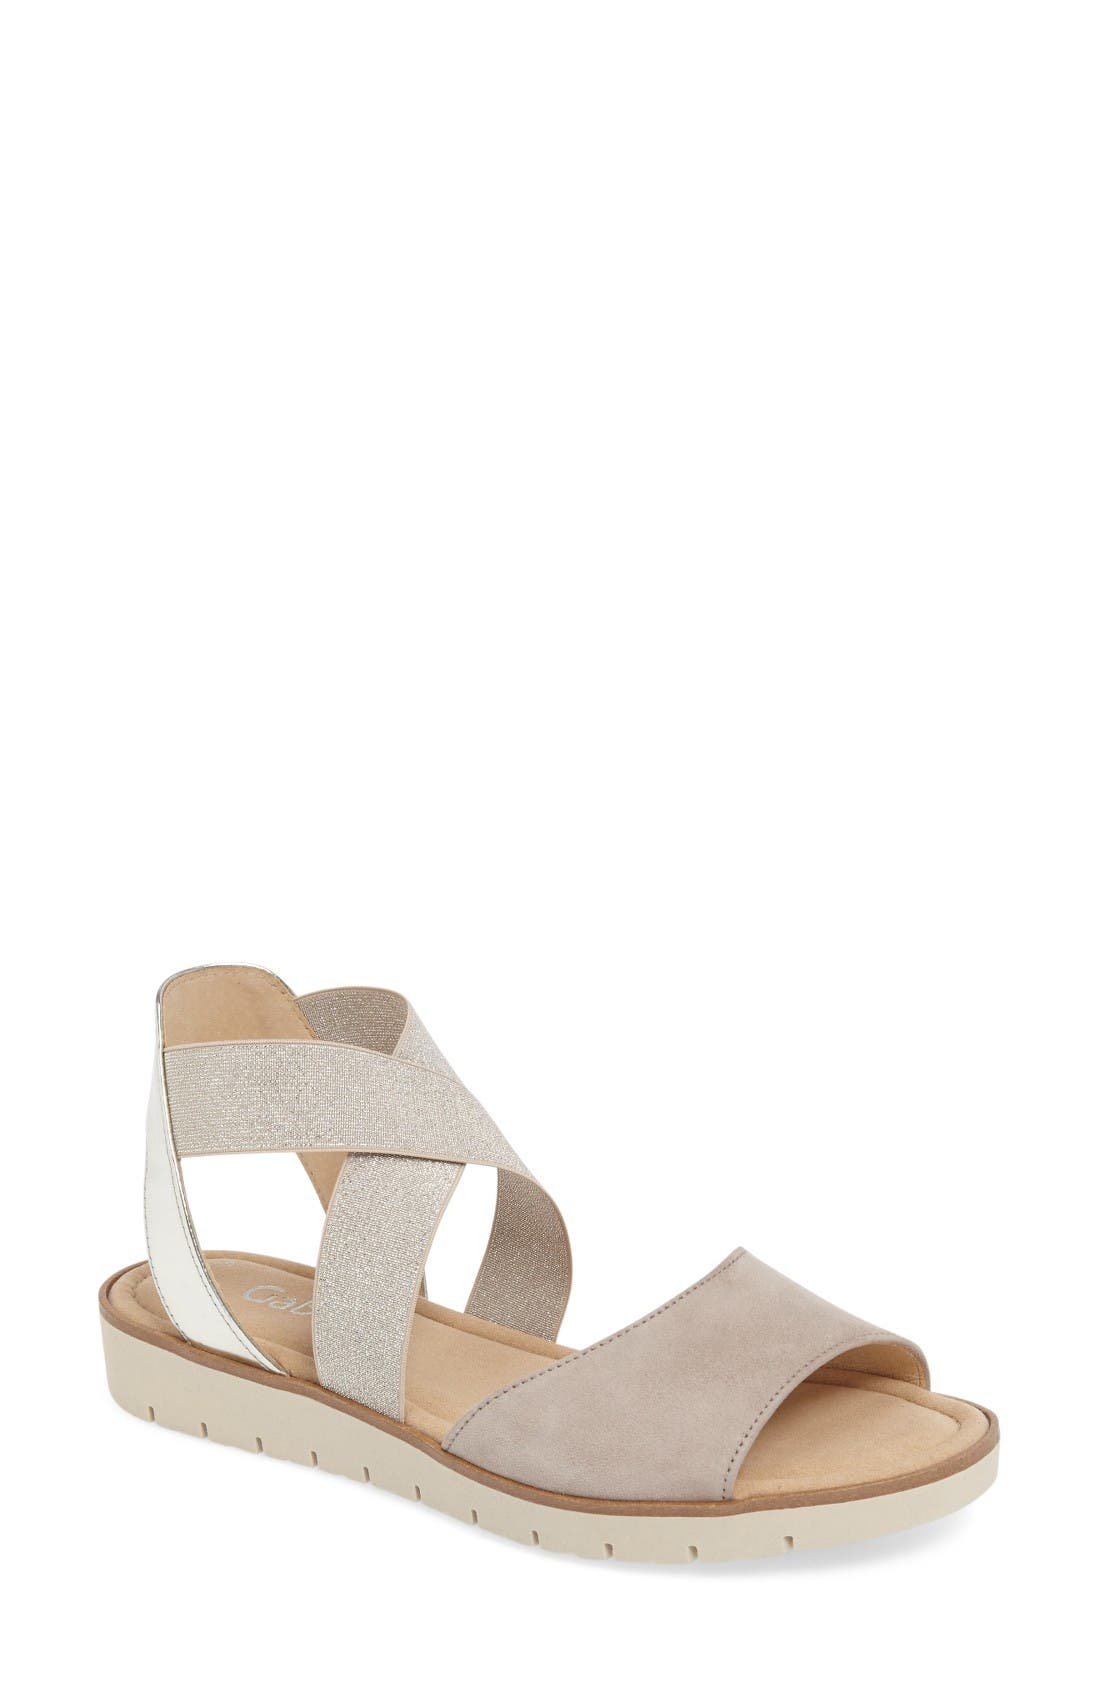 Strappy Sandal,                             Main thumbnail 1, color,                             Beige Leather